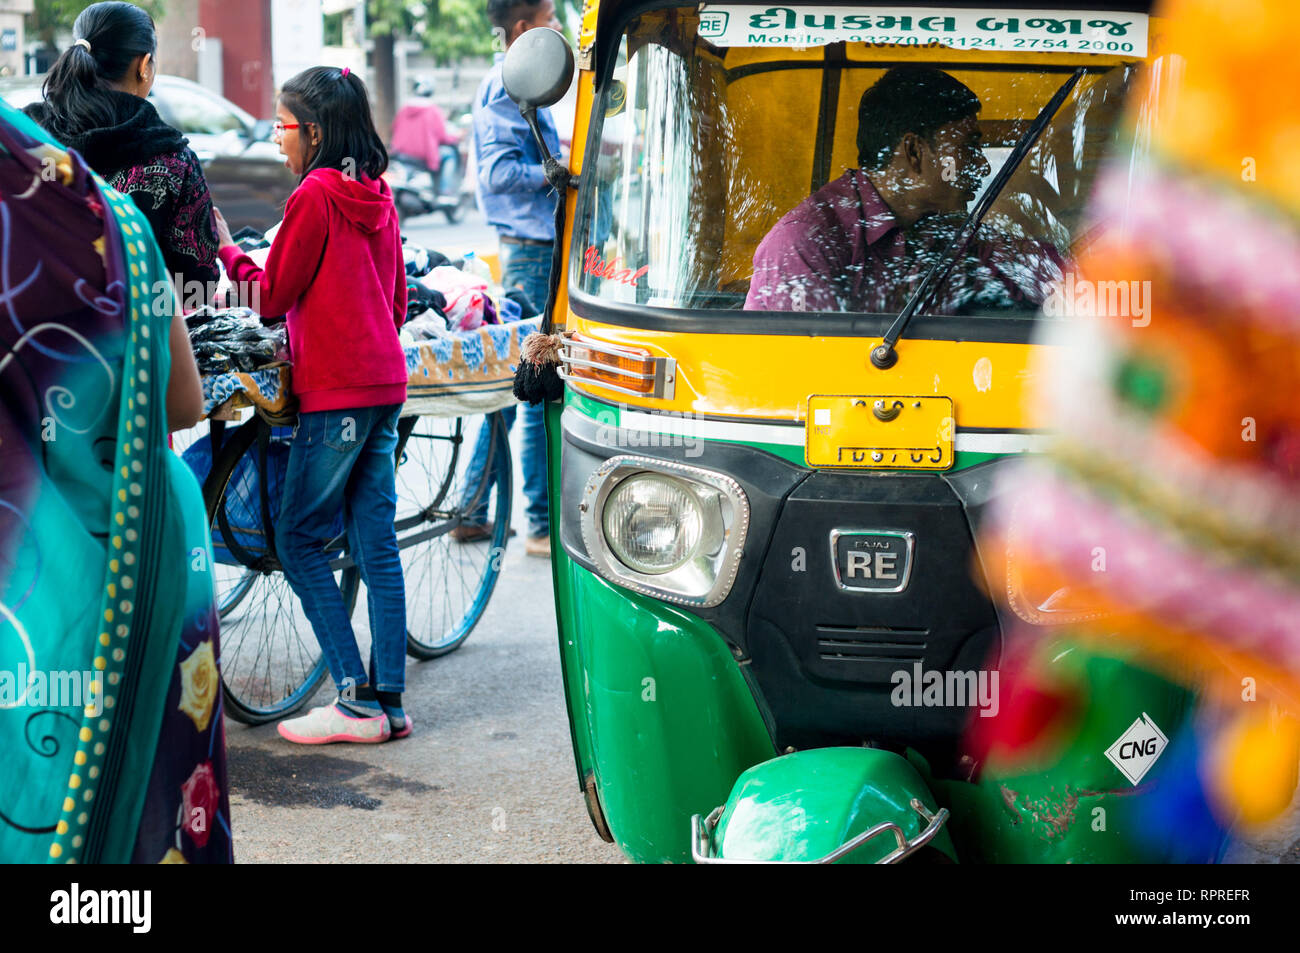 Green and yellow auto rickshaw stopping for passengers in Ahmedabad gujarat - Stock Image